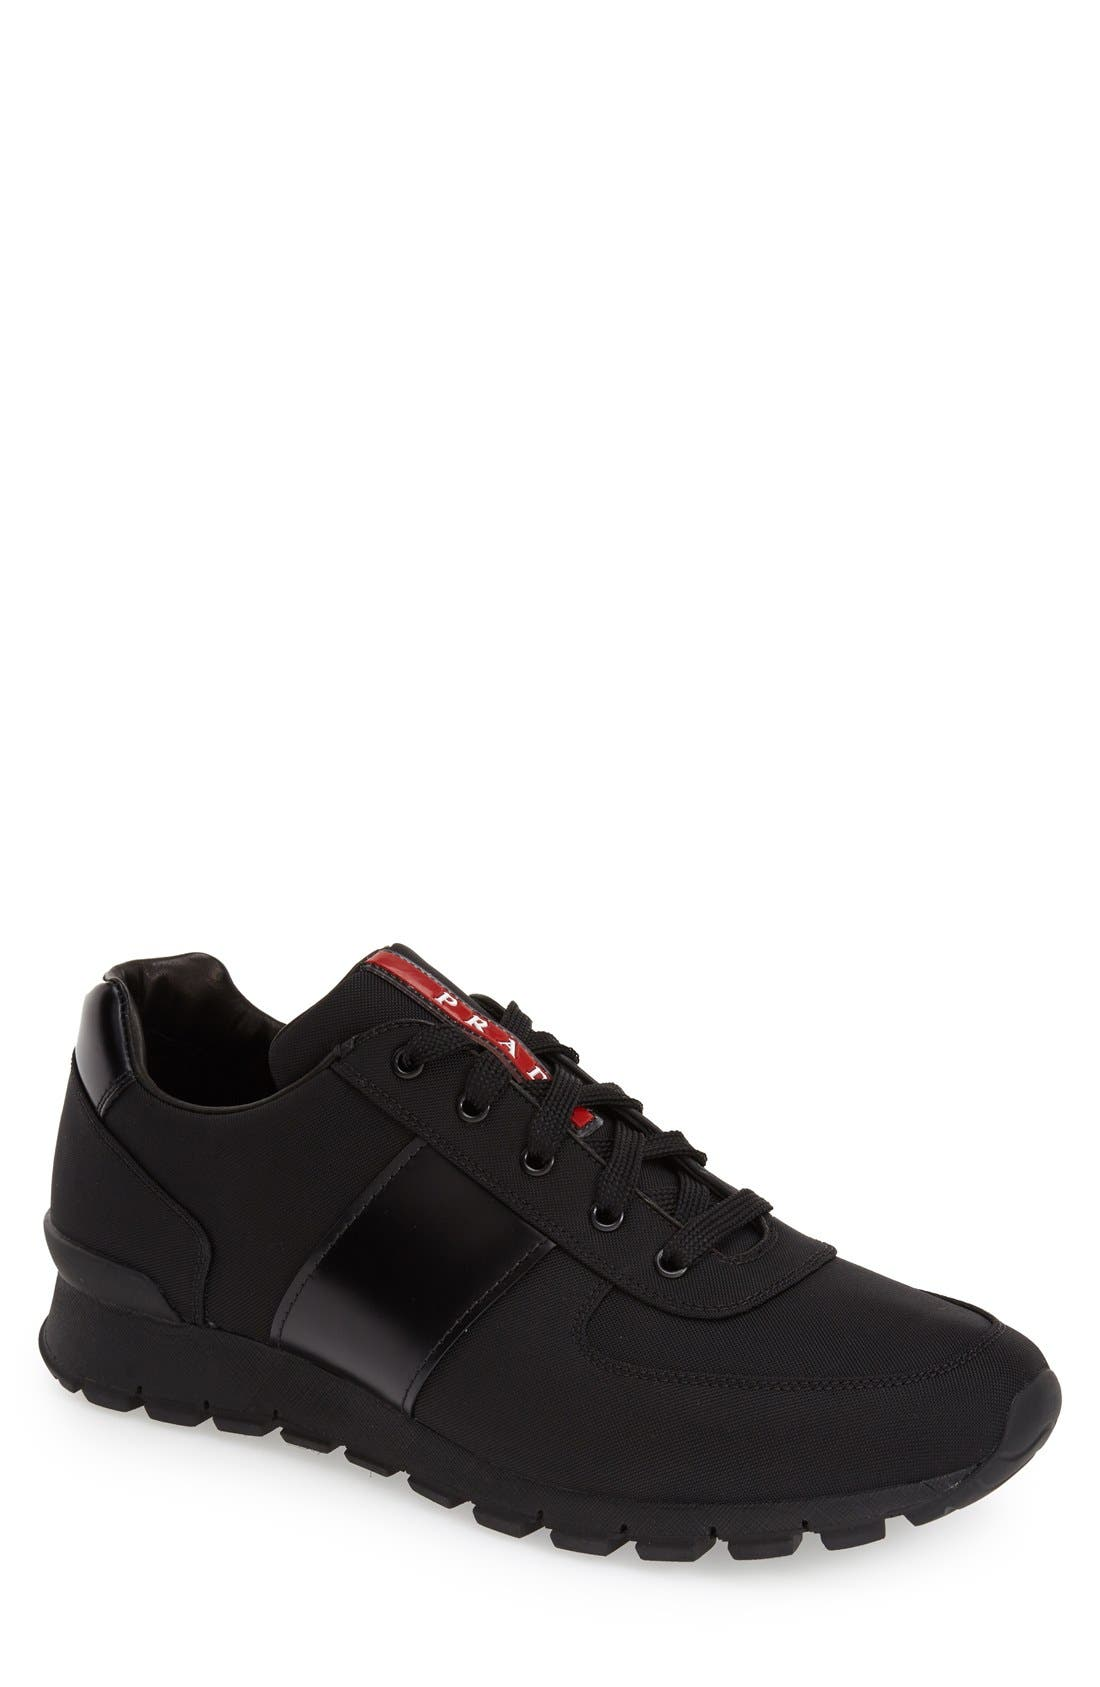 PRADA LINEA ROSSA Runner Sneaker, Main, color, 001